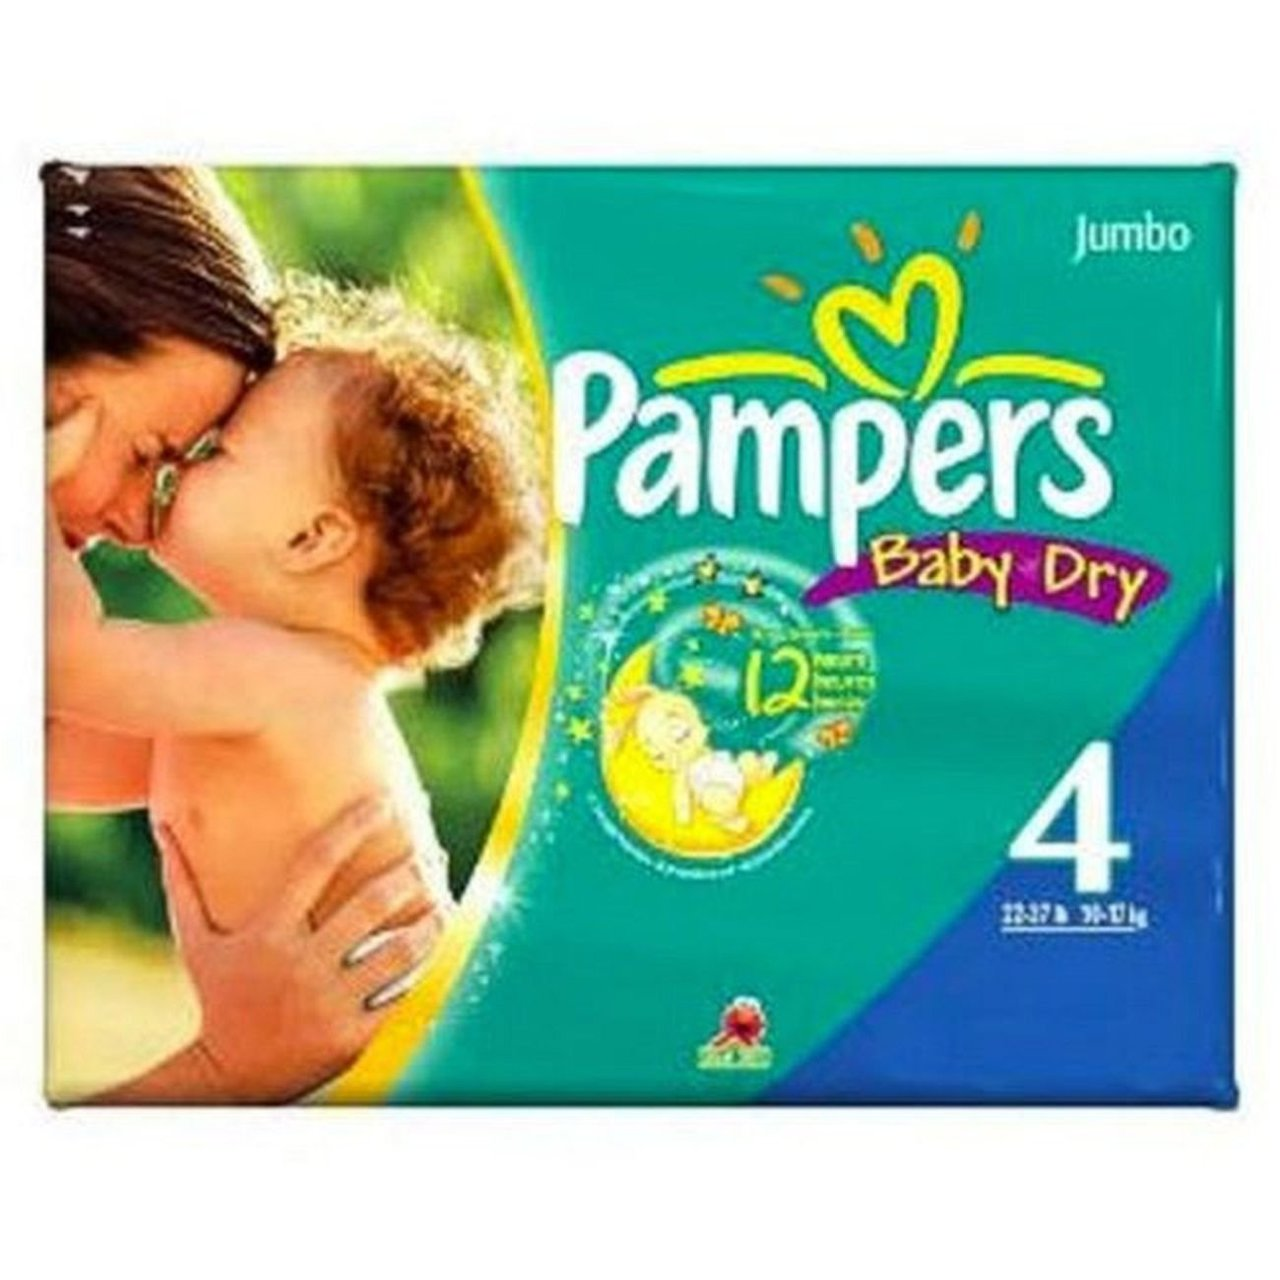 4 PACKS : Pampers Diapers Size 4 by Pampers